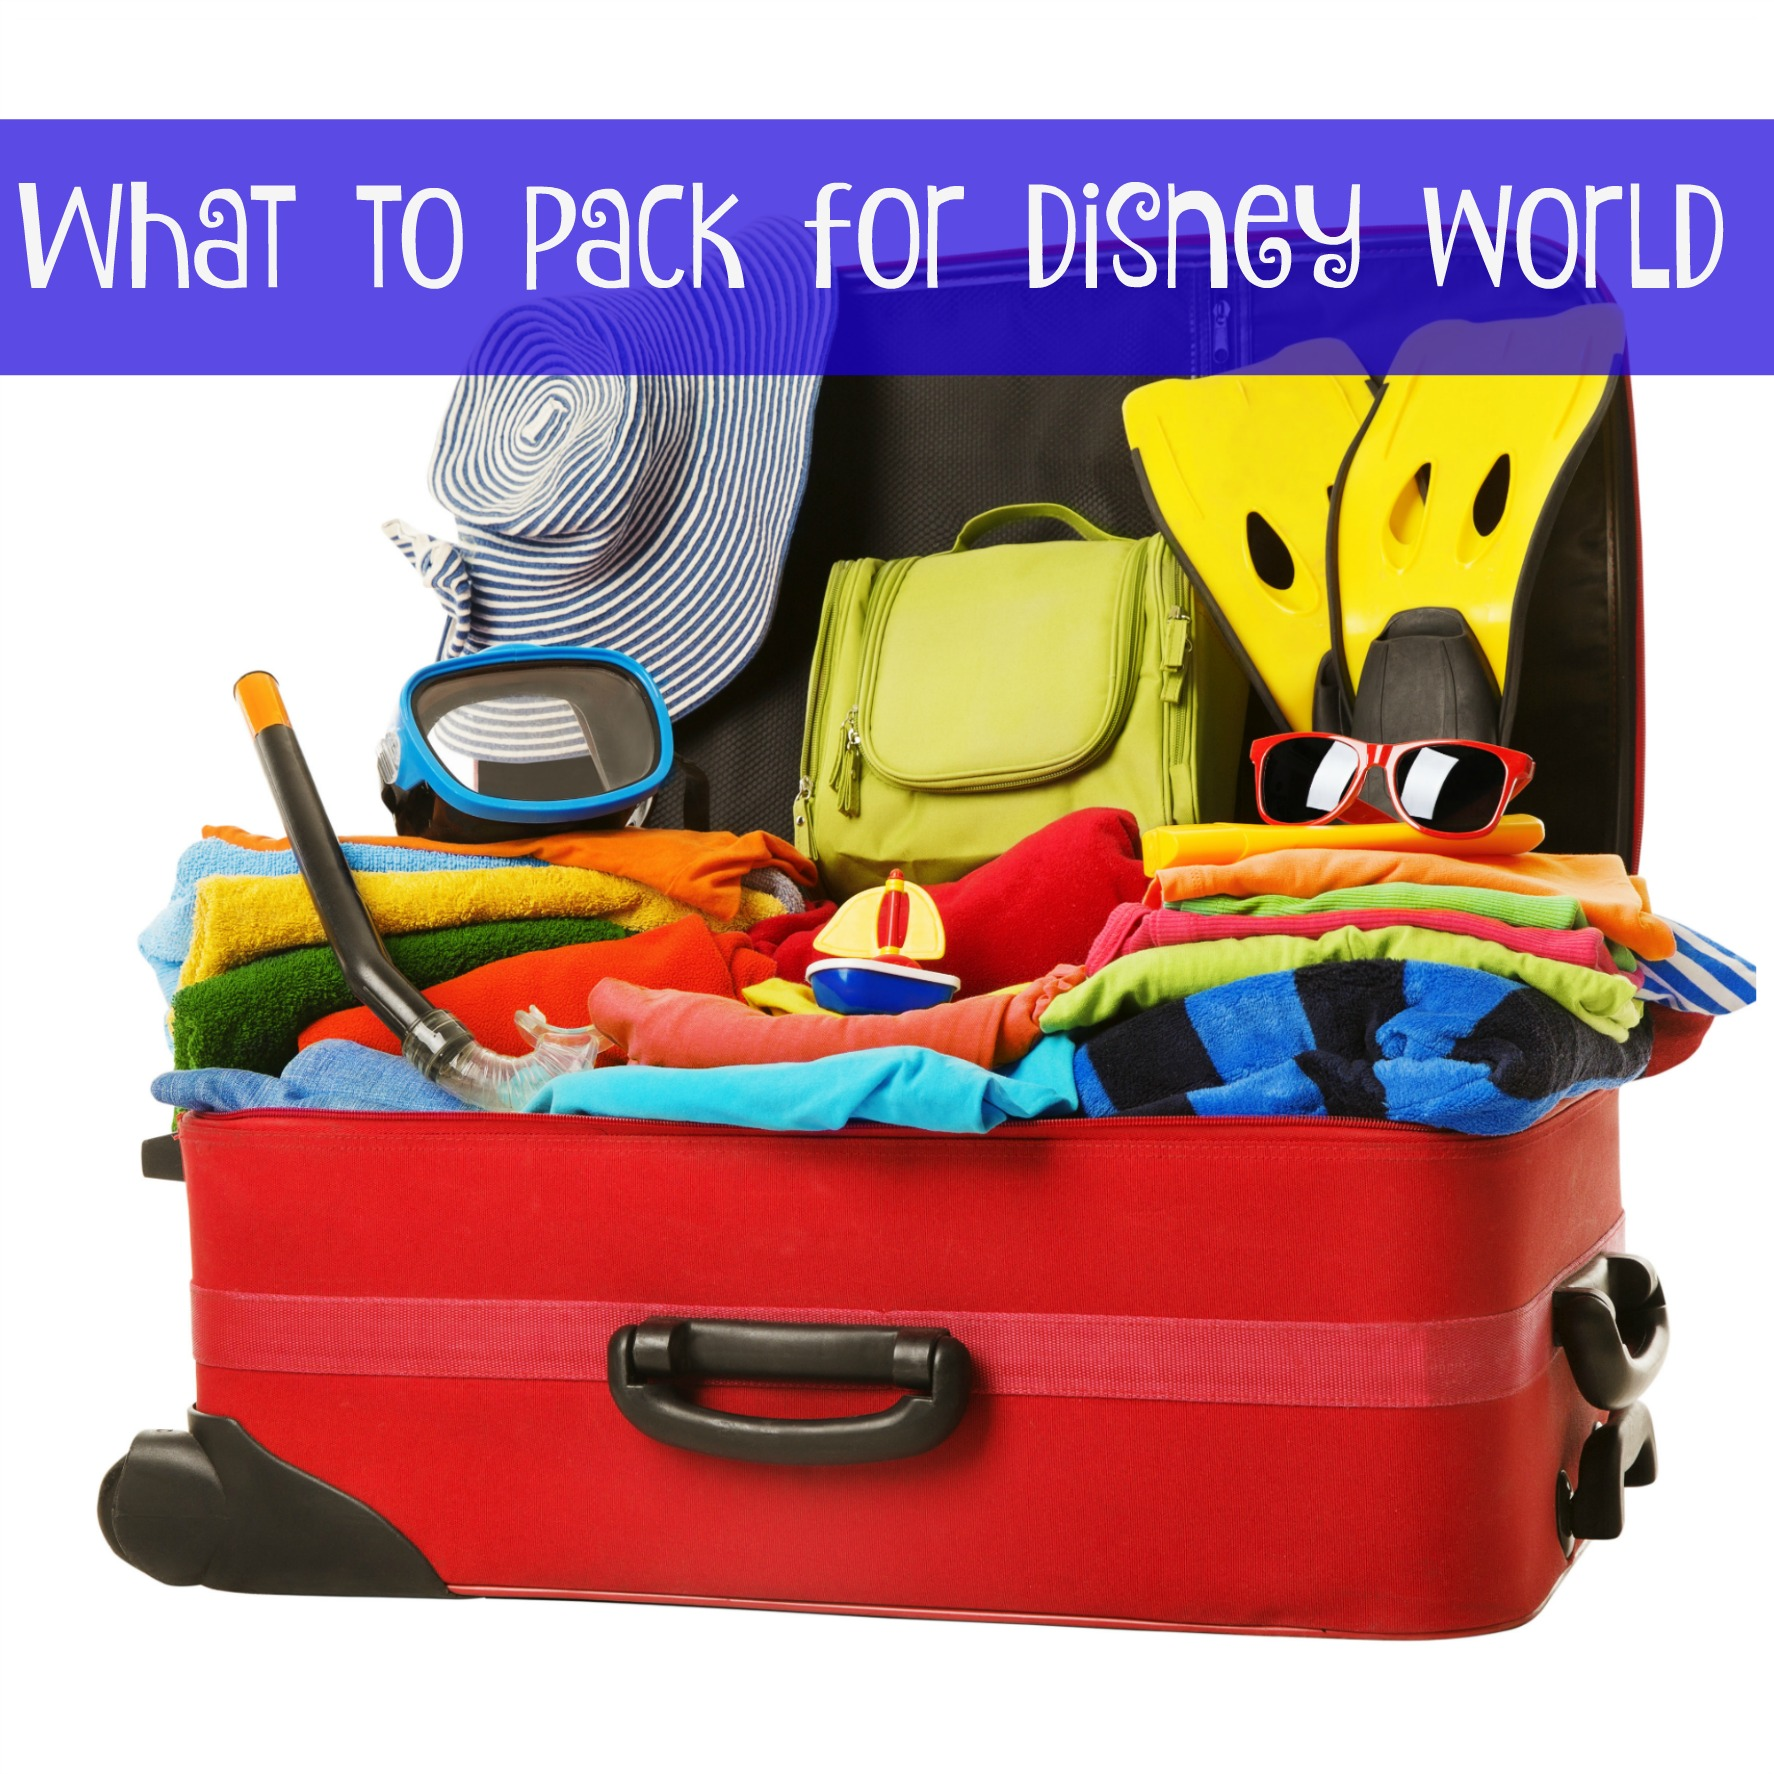 whattopackdisneyworld